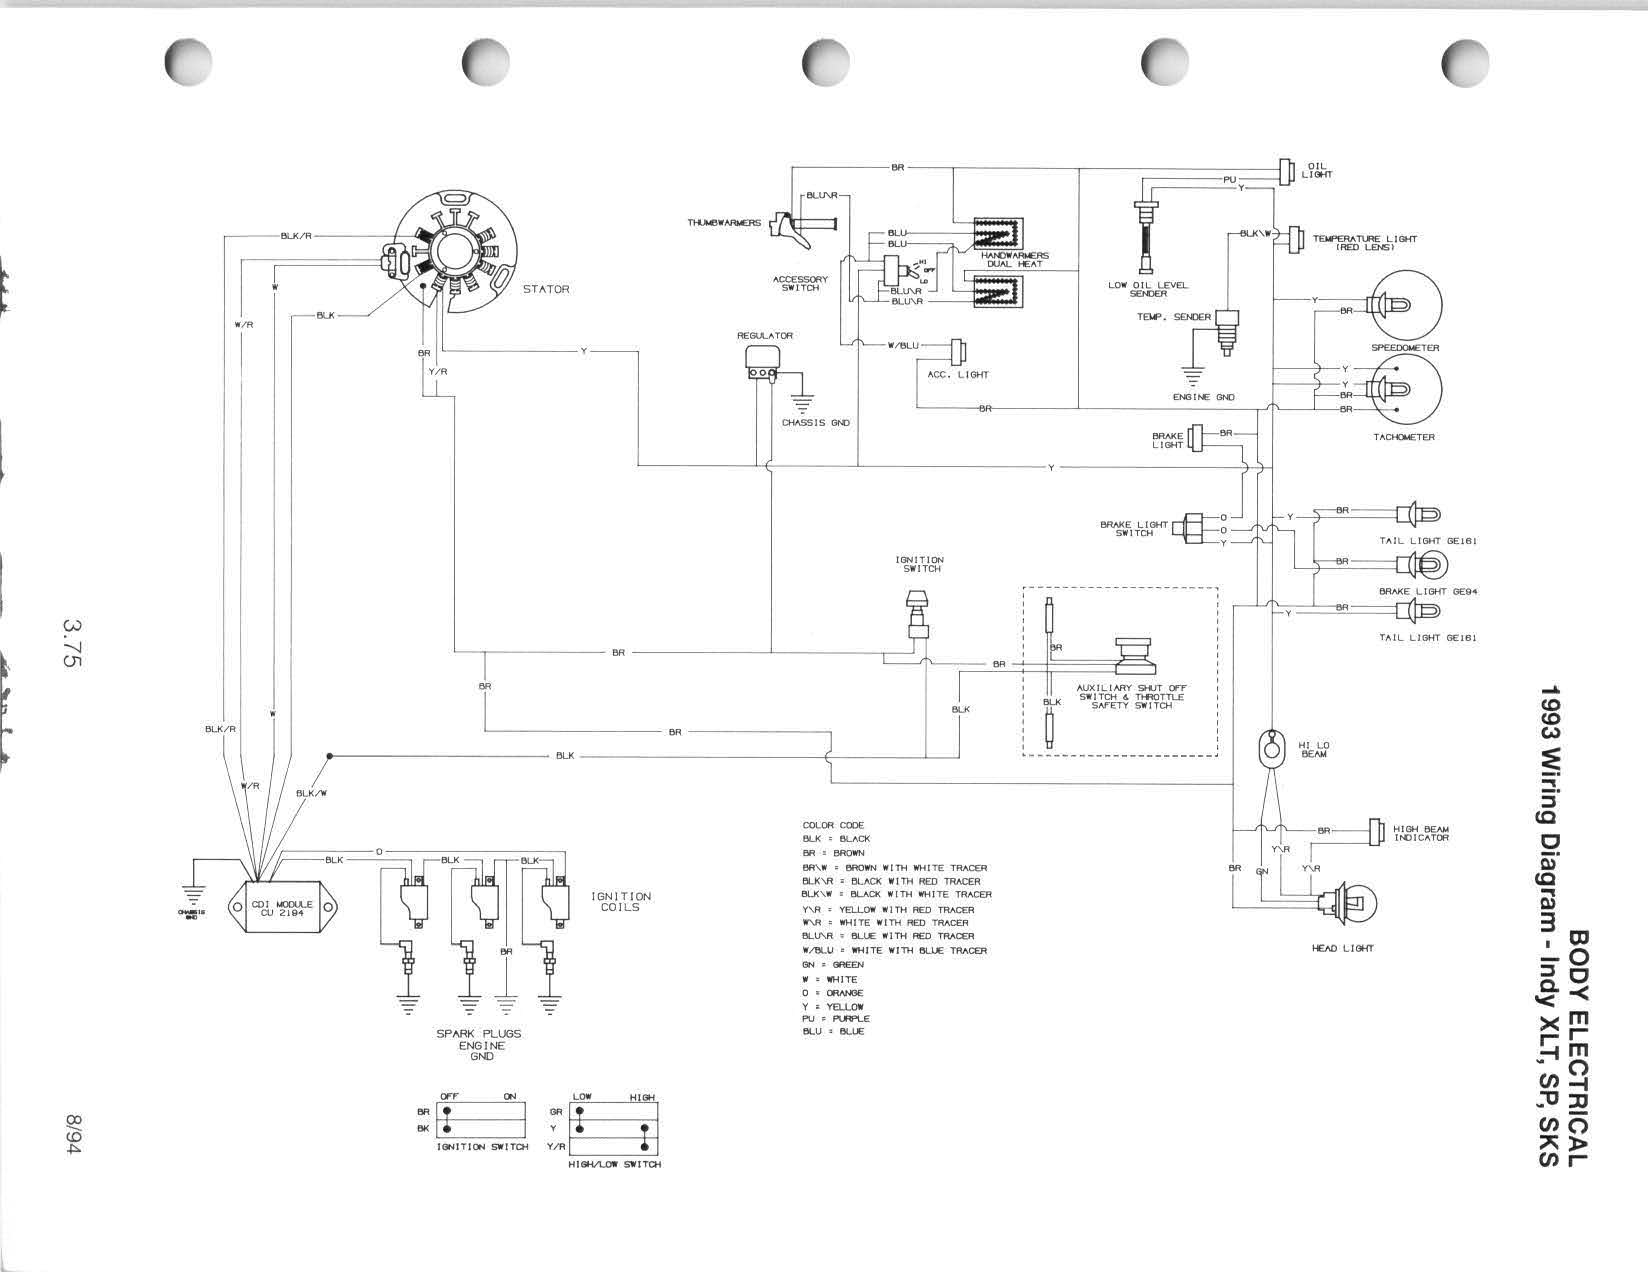 hight resolution of wrg 2586 2001 yamaha phazer 500 wiring diagram 2001 yamaha phazer 500 wiring diagram